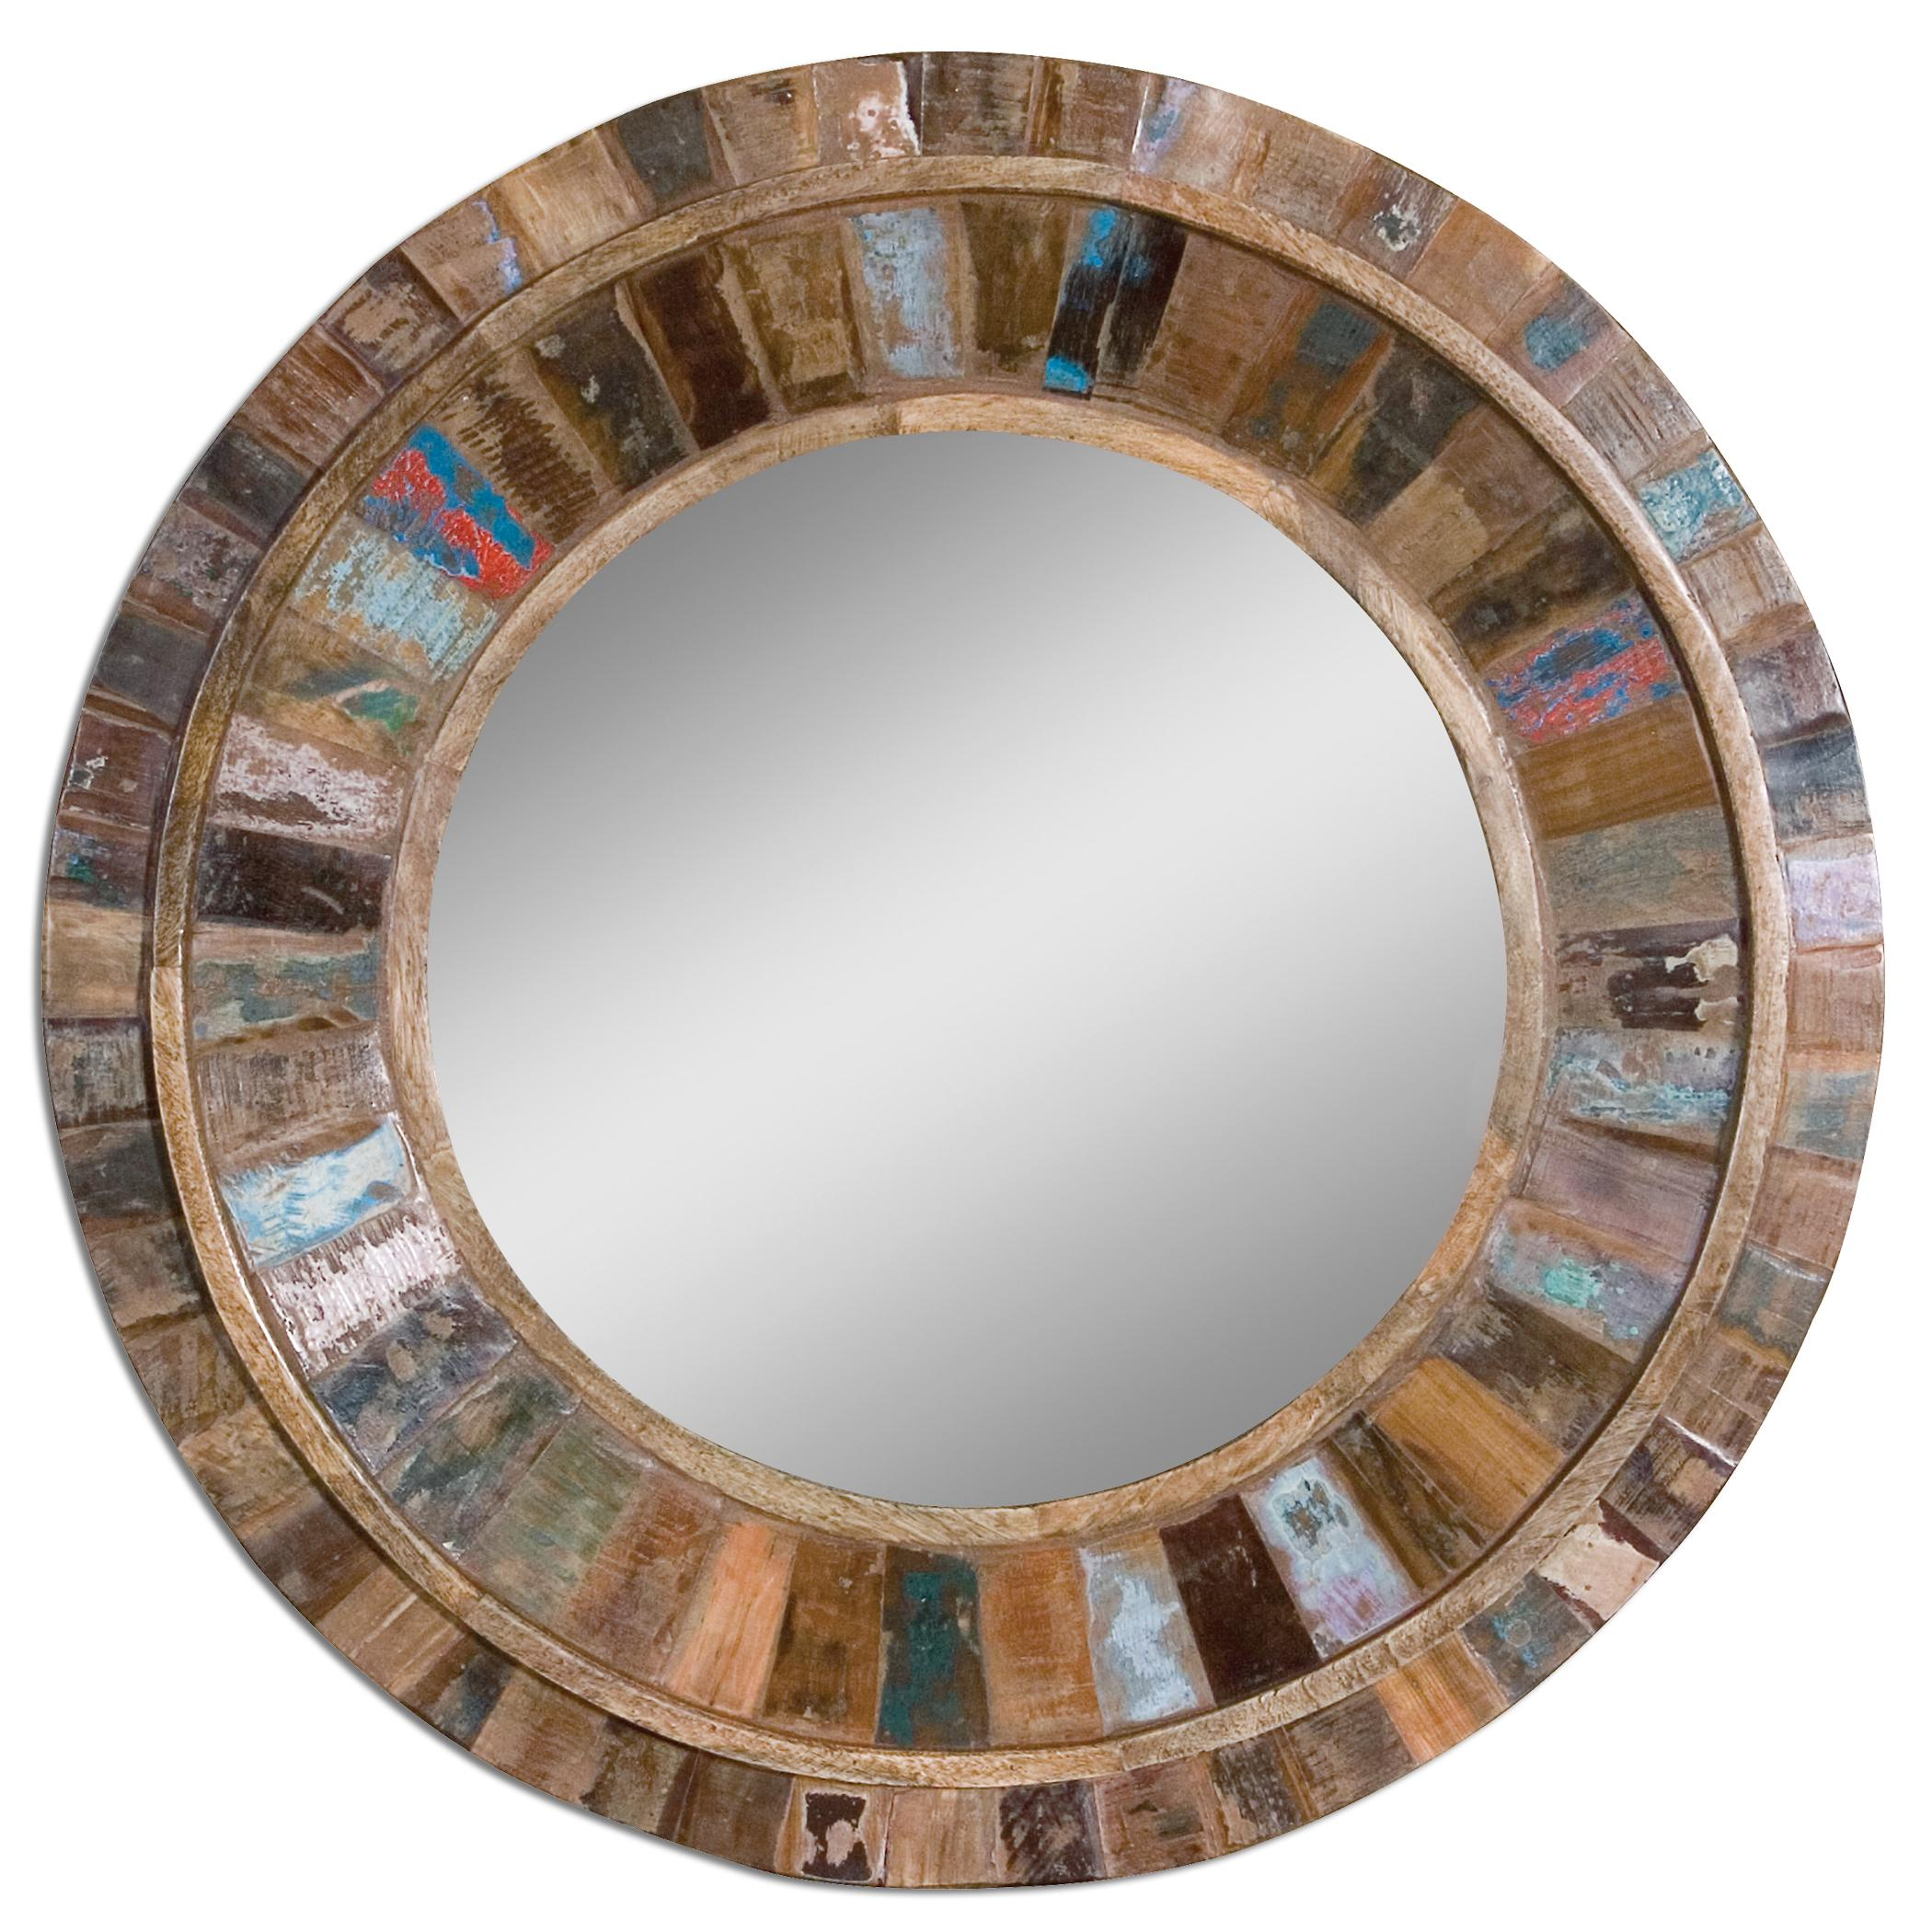 Uttermost Mirrors Jeremiah Round Wood Mirror - Item Number: 04017